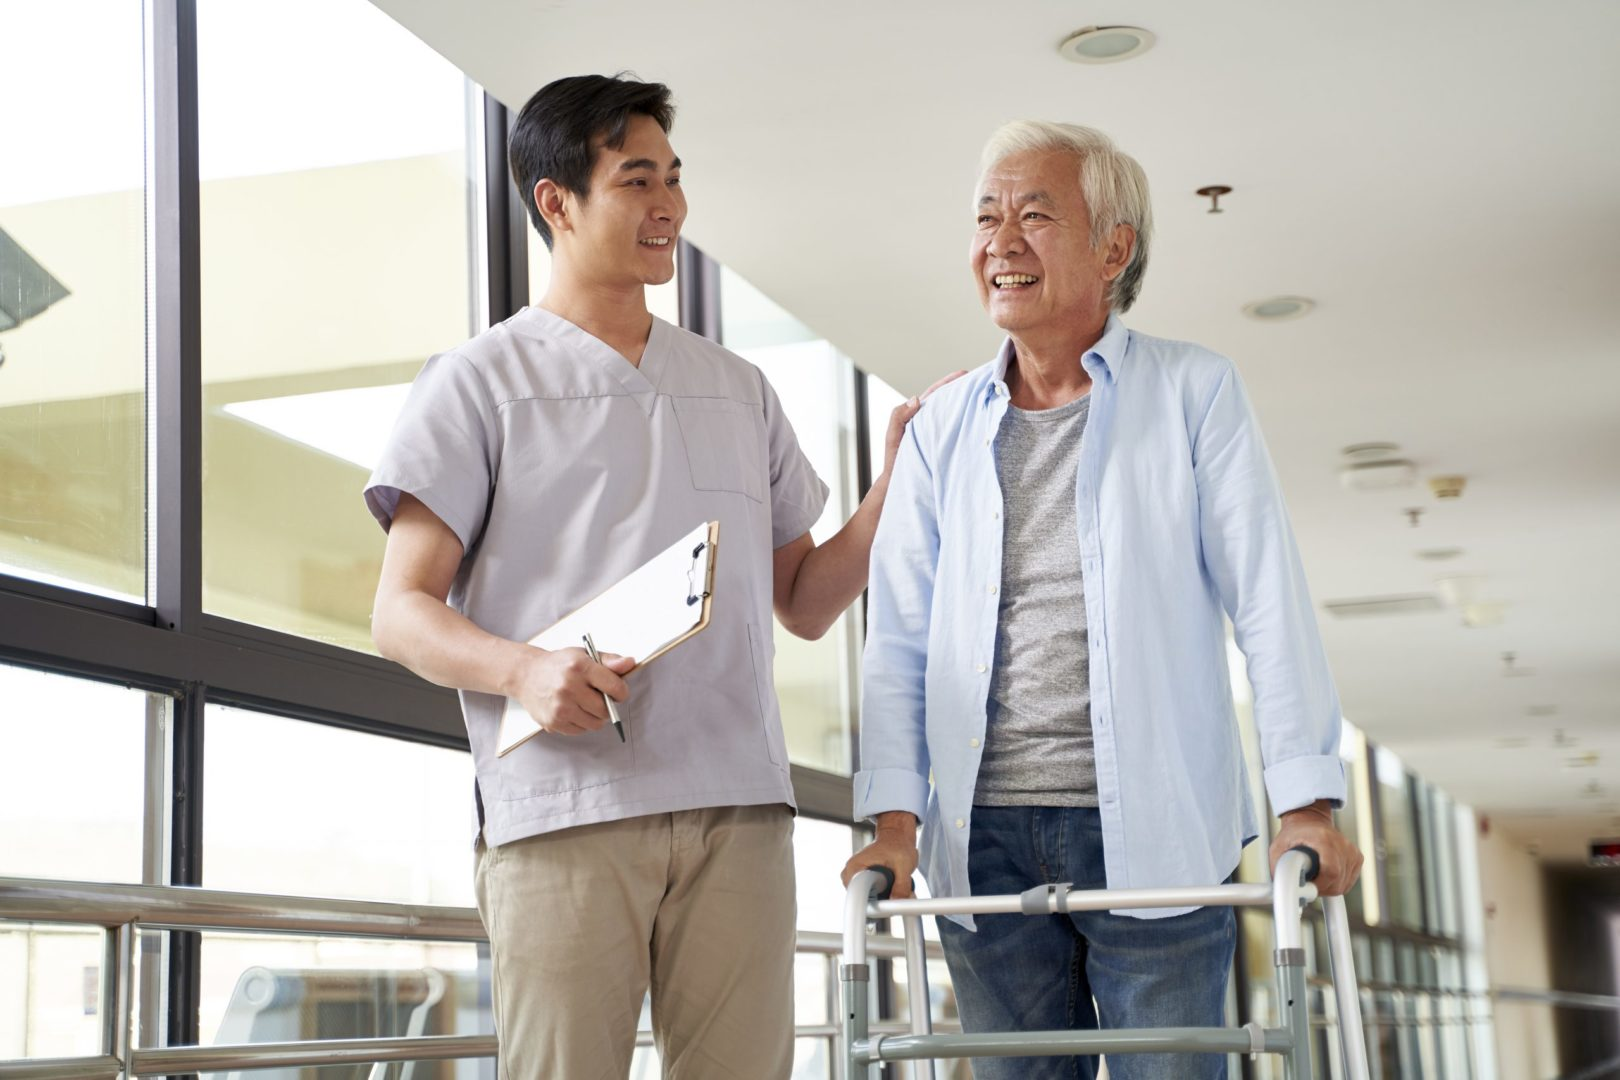 Happy senior asian man talking with a physical therapist in rehab center. The therapist, on the left, is wearing medical scrubs and holding a clipboard and pen. The man on the right has a walker and is wearing a gray t-shirt with a light blue button down open to the front, as well as blue jeans. The setting is a rehab center.